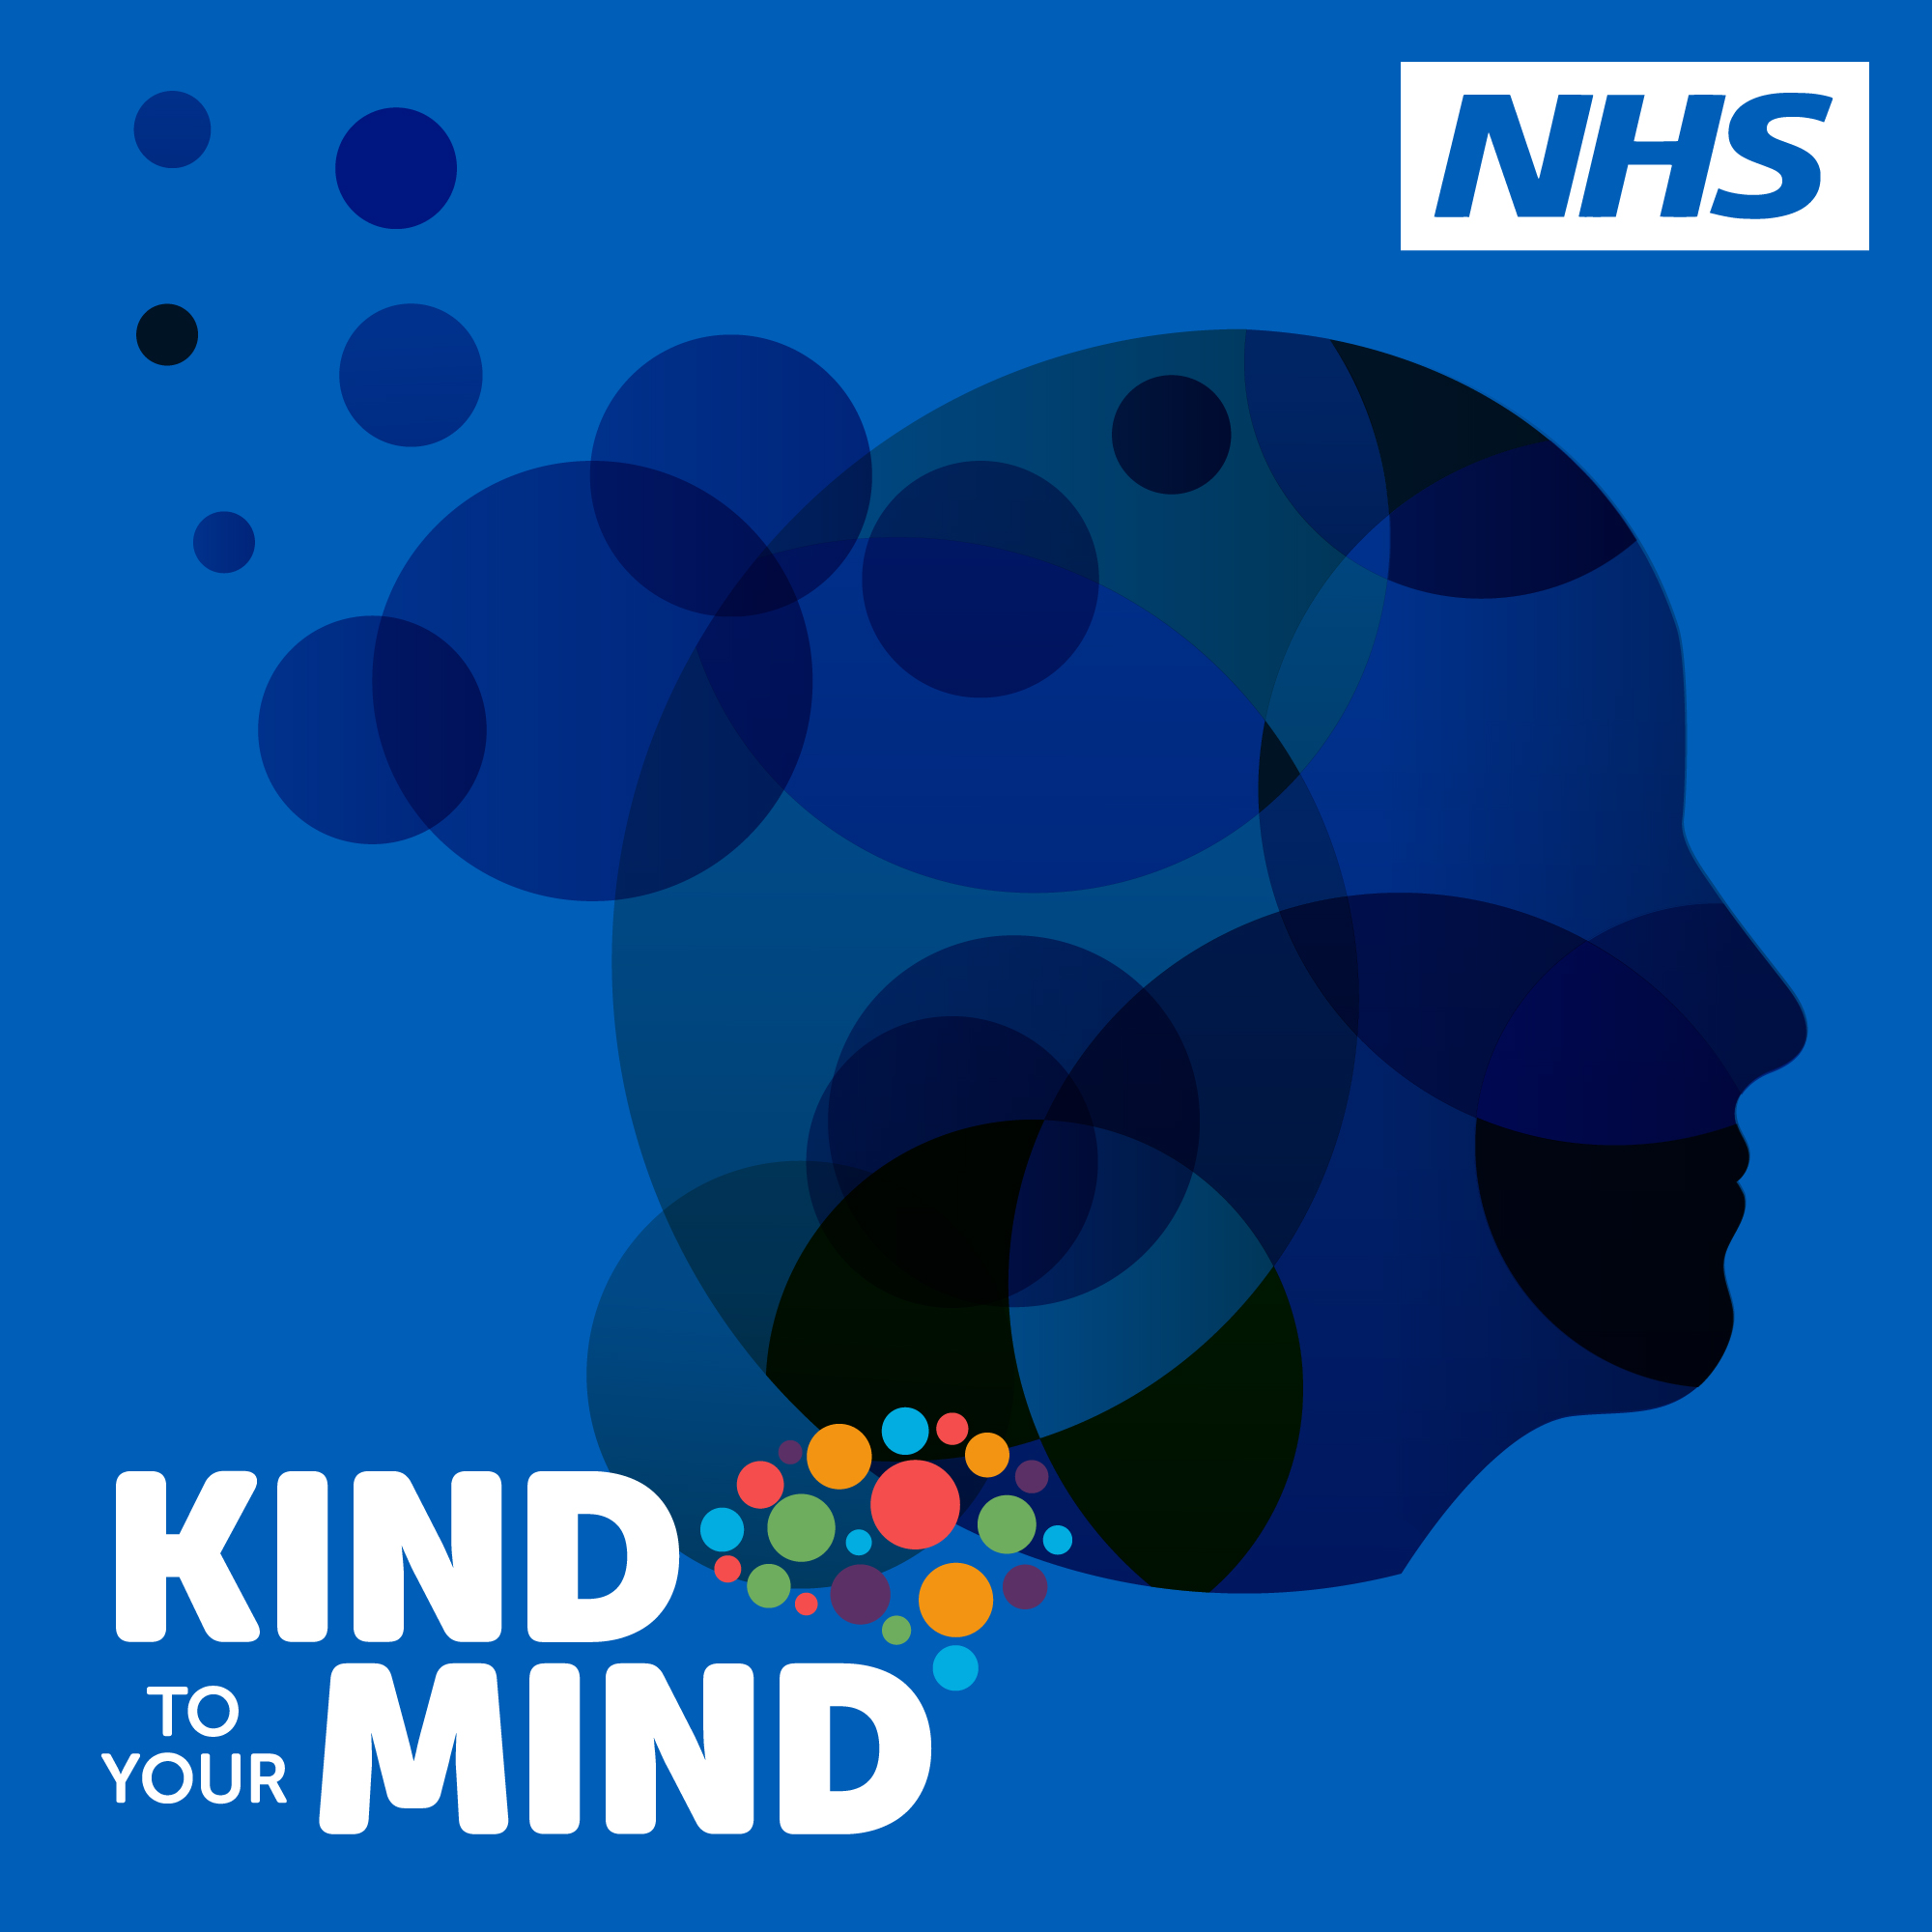 NHS Kind to Your Mind show art